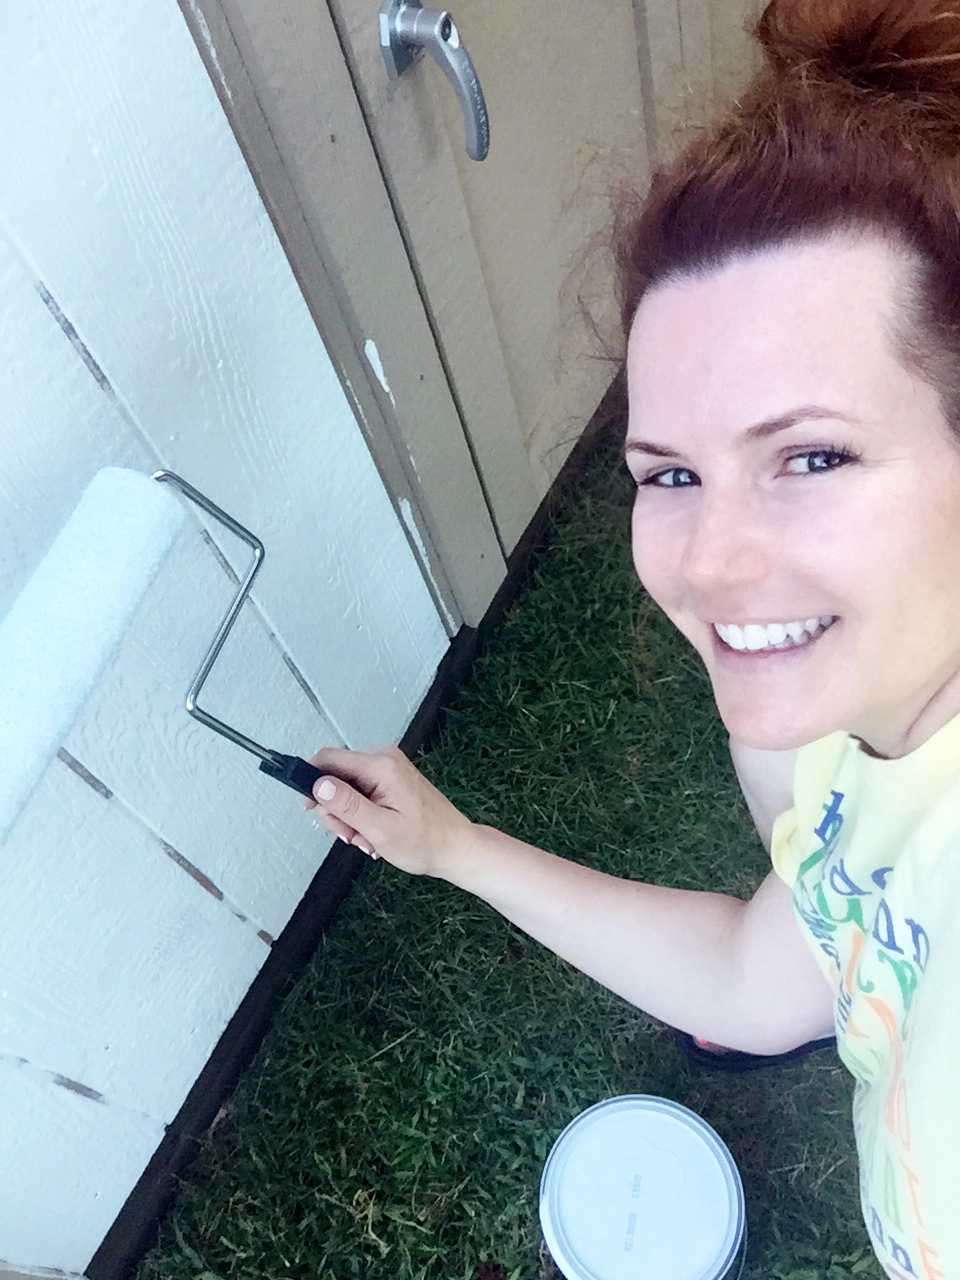 Paint, paint and more paint...using a paint-n-primer-in-one helped cover this porous wood.